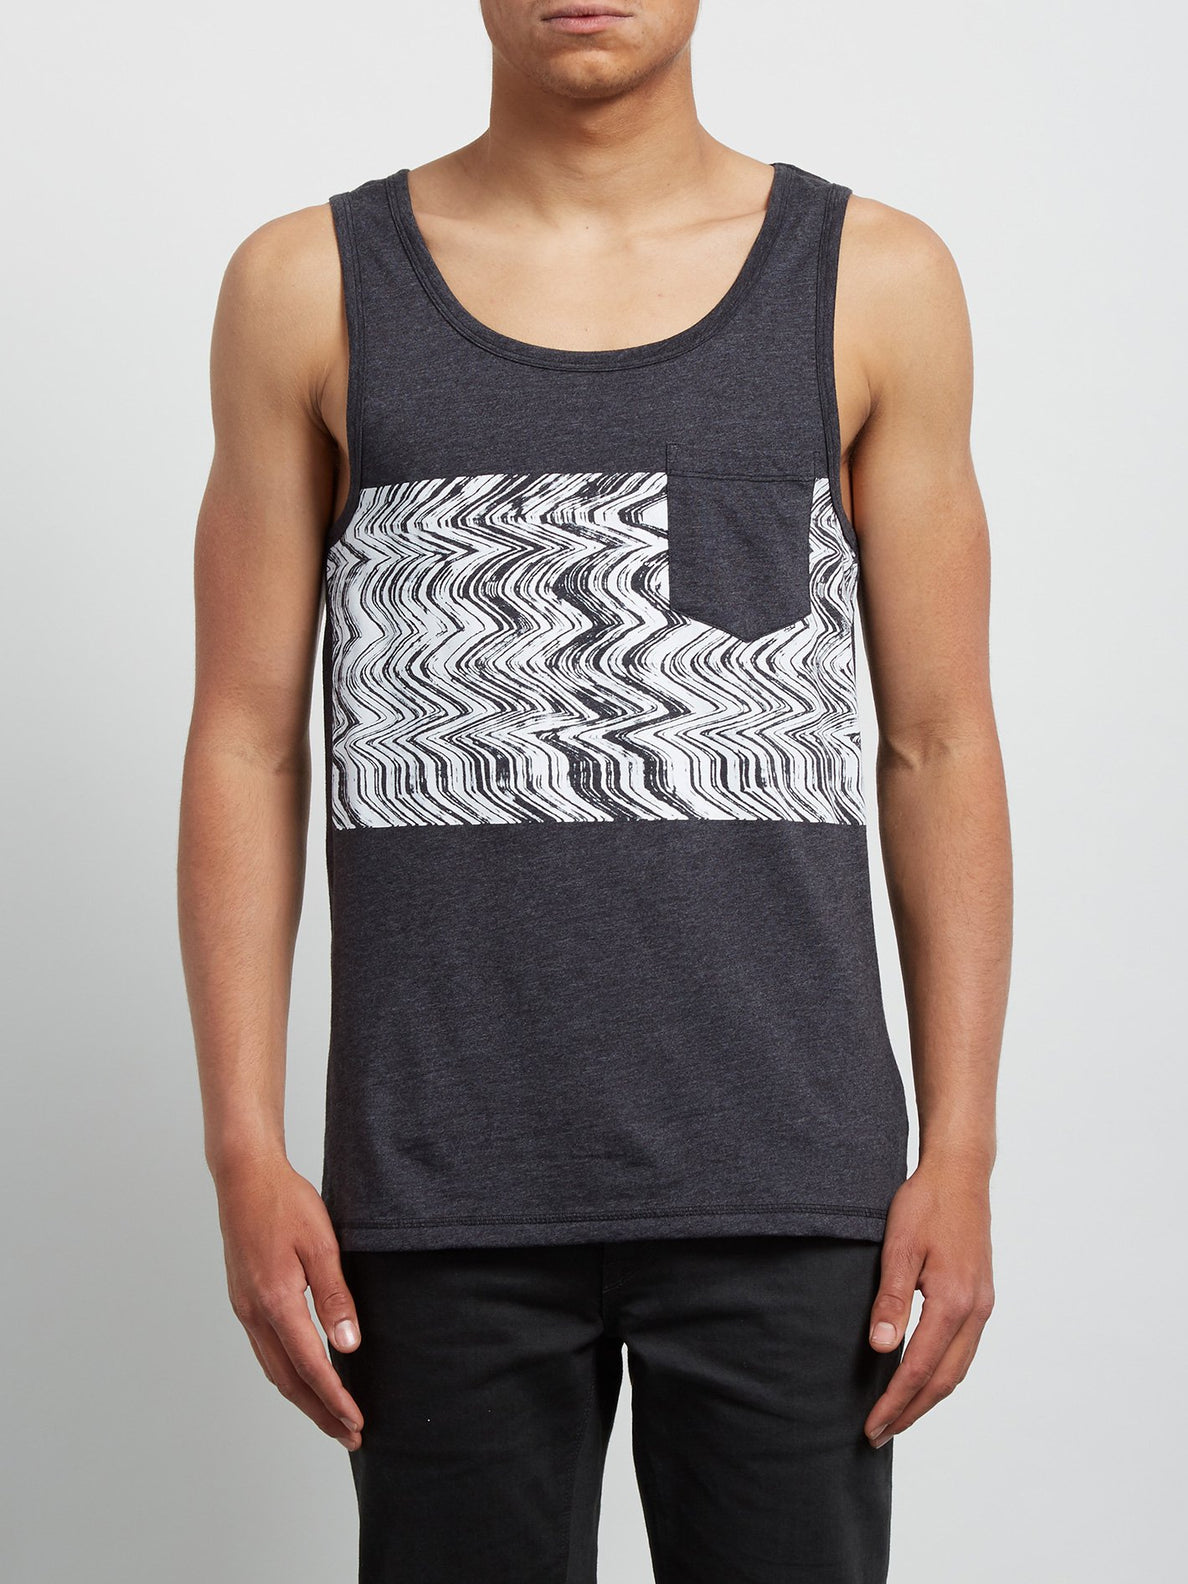 Lofi Heather Tank - Heather Black